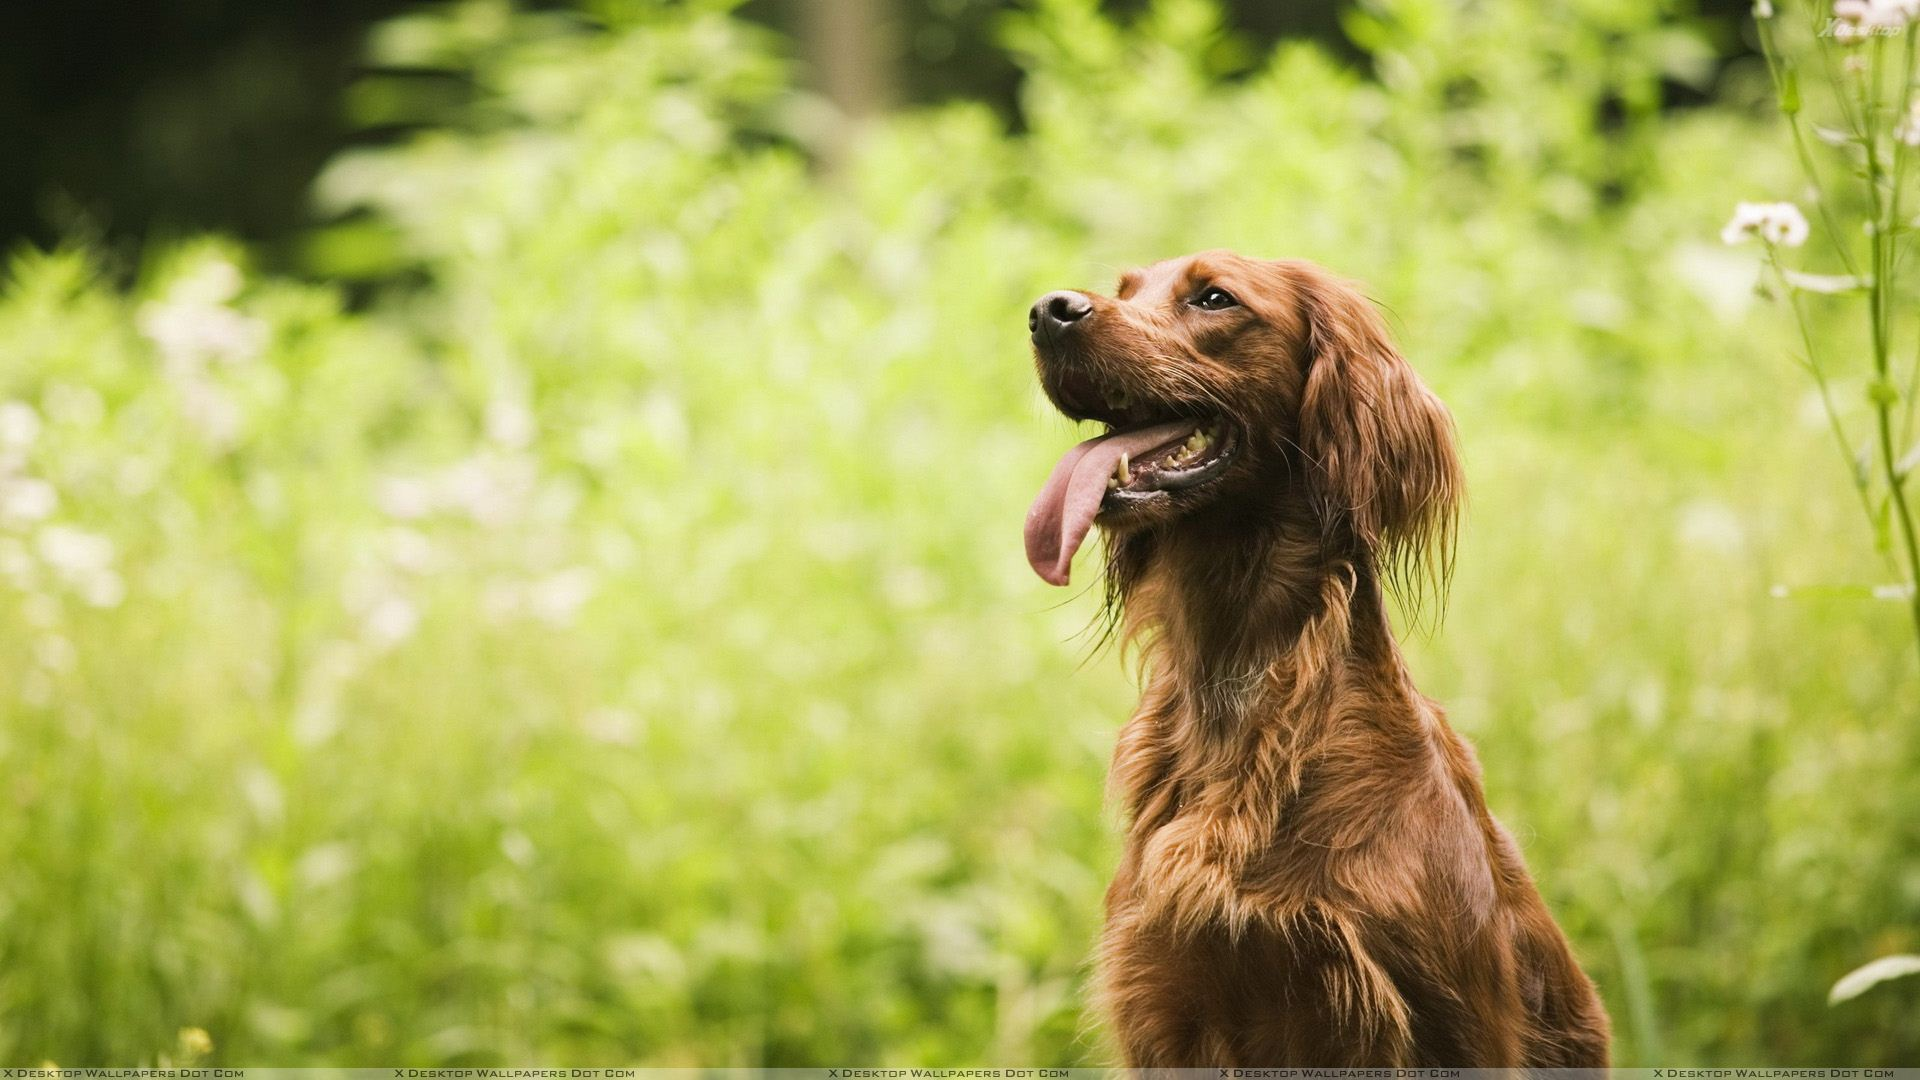 Brown Dog In Garden